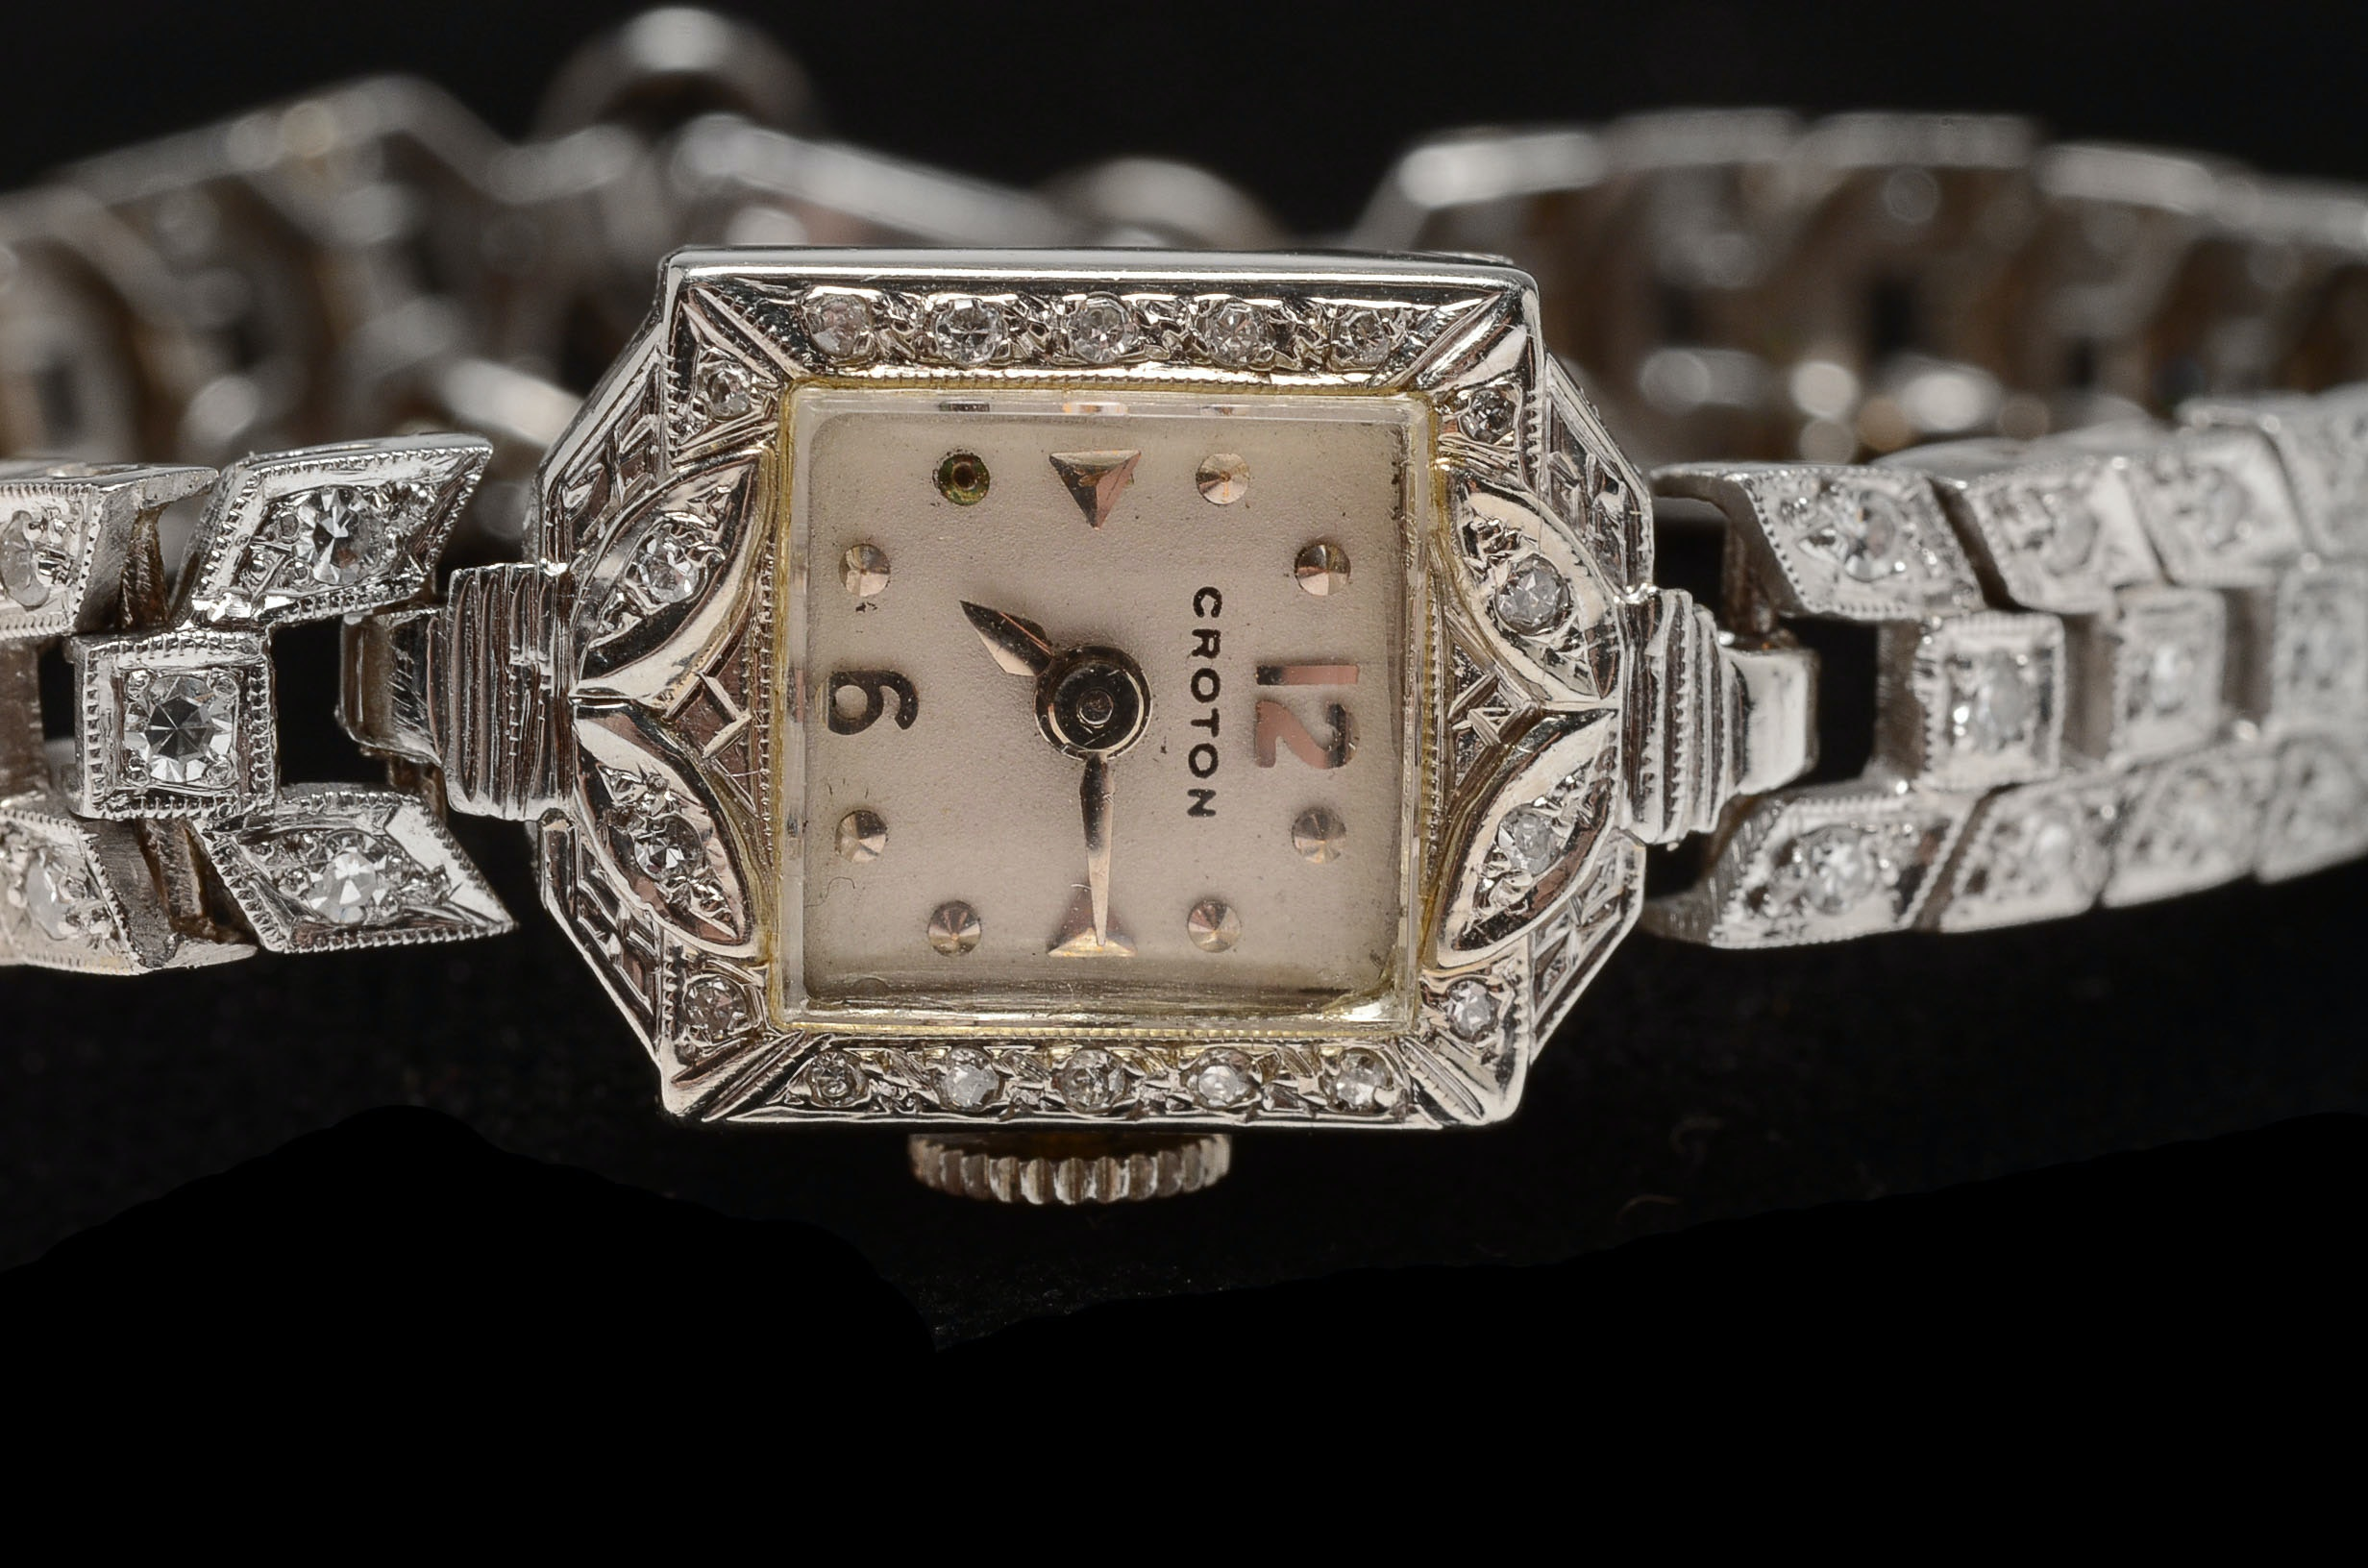 croton singles & personals Shop ebay for great deals on croton men's wristwatches with date  this is a handsome estate found vintage gentleman's swiss croton wristwatch dating to the .